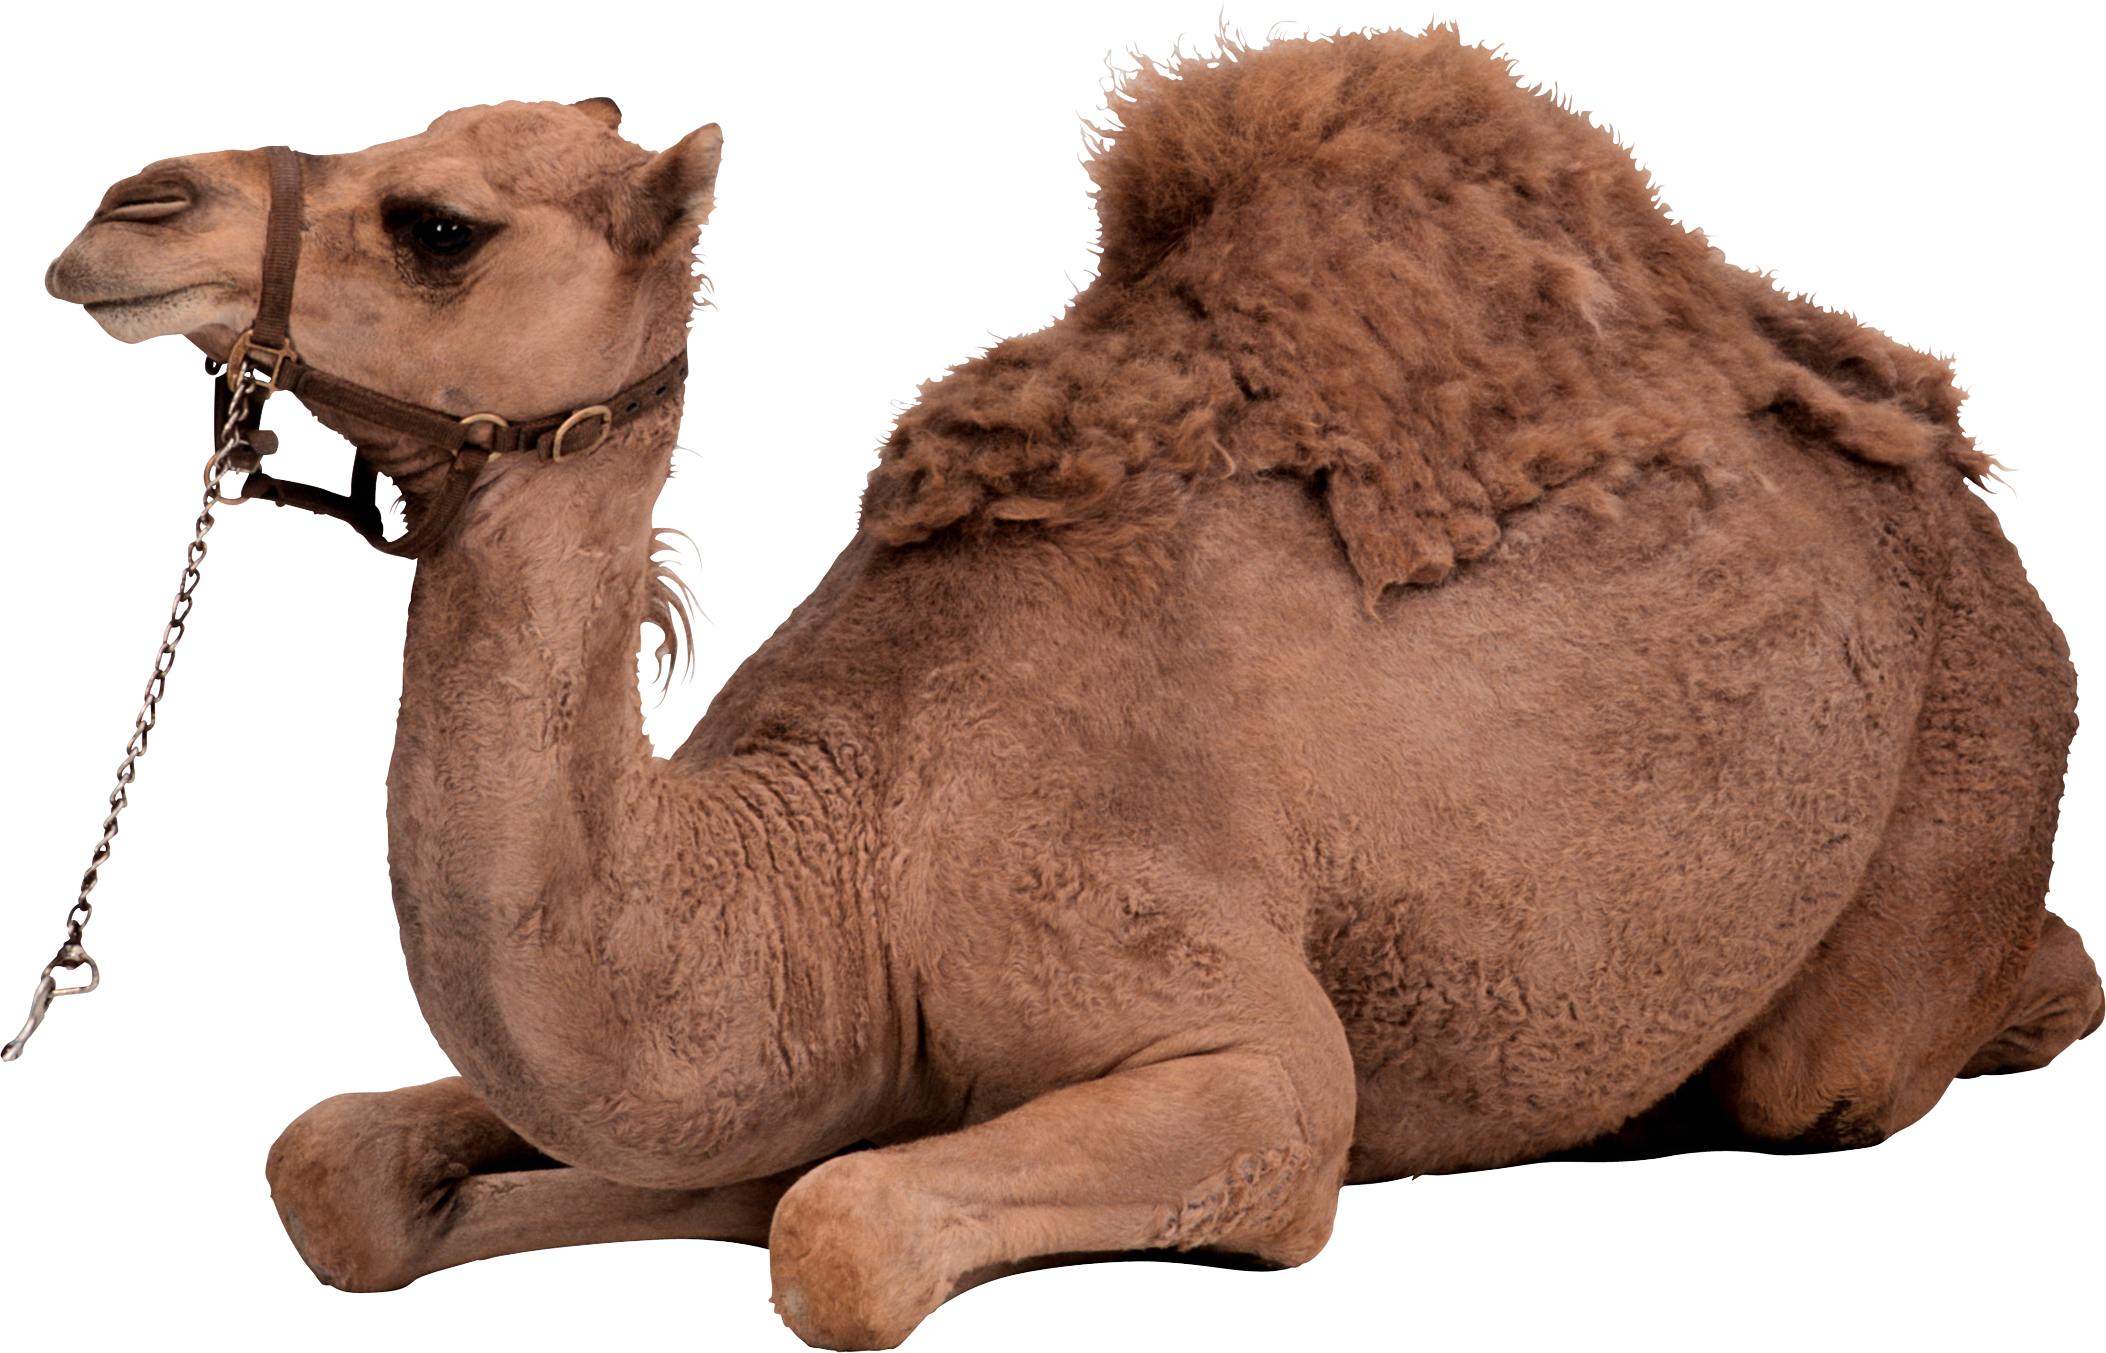 Camels In The Desert Png - Camel Png, Transparent background PNG HD thumbnail